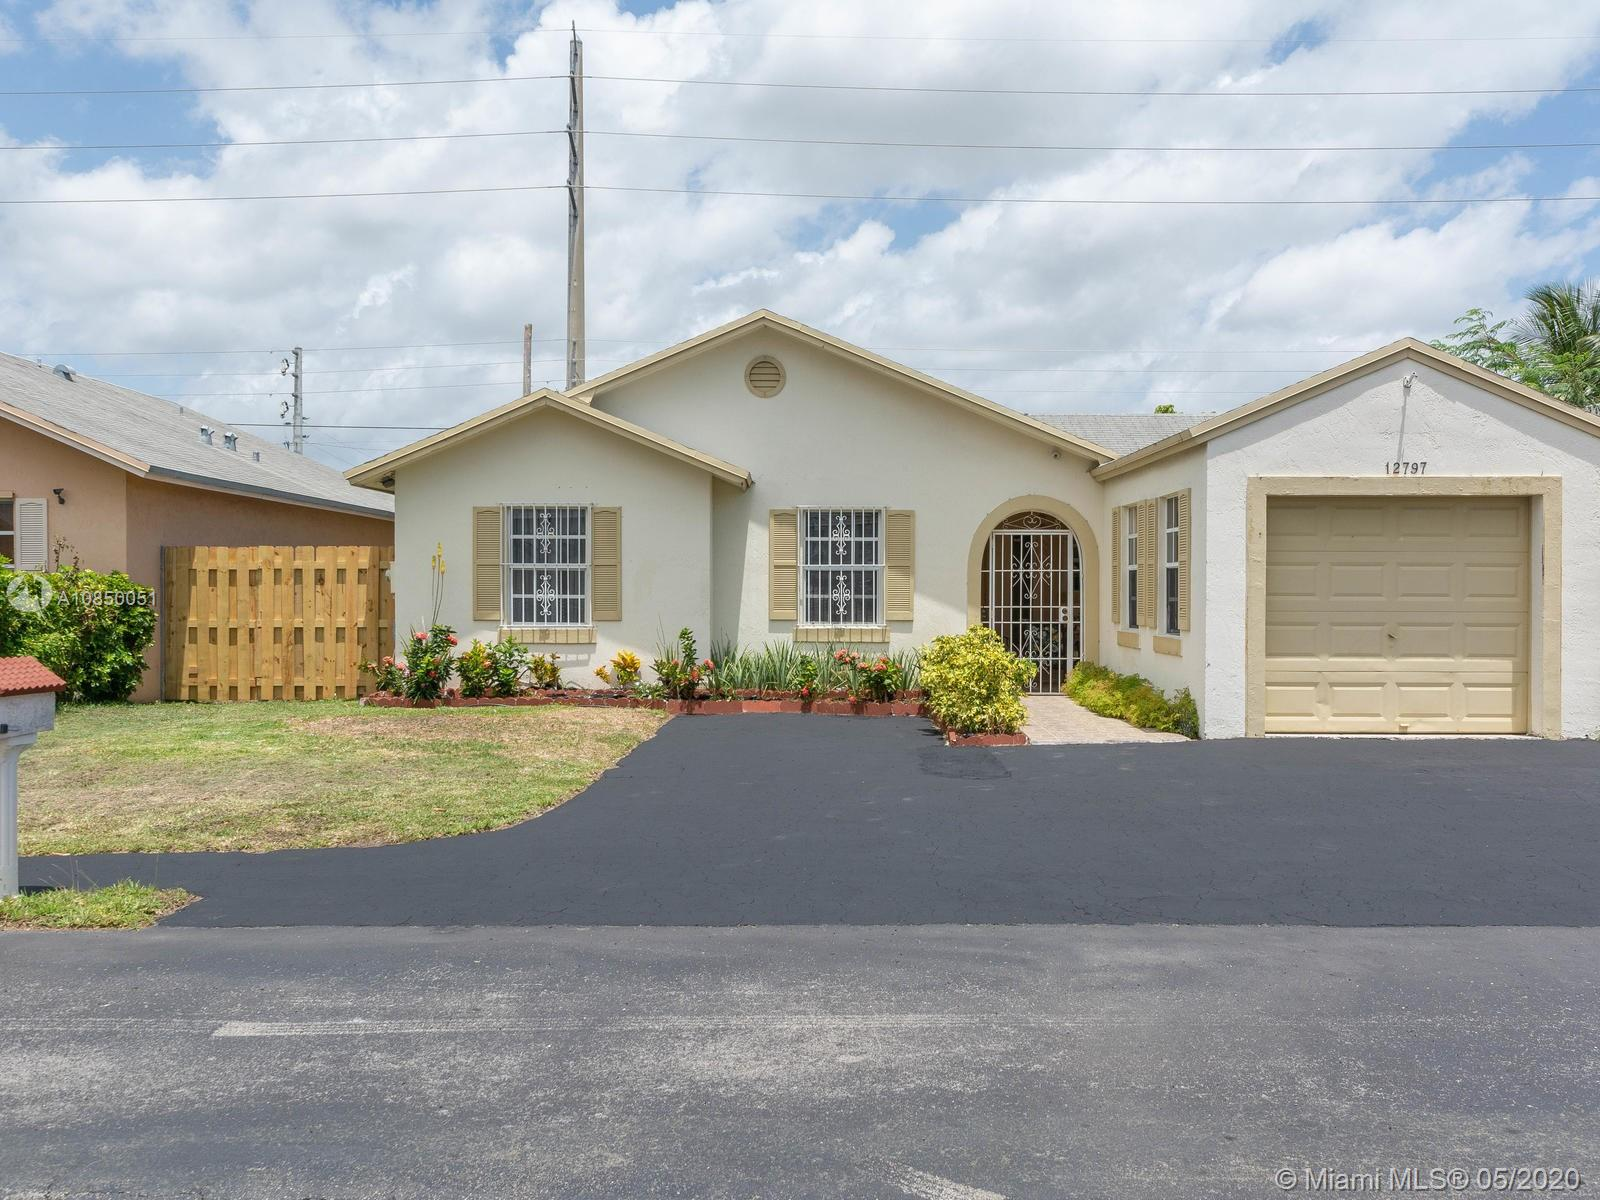 12797 Sw 248th Ter Property Photo